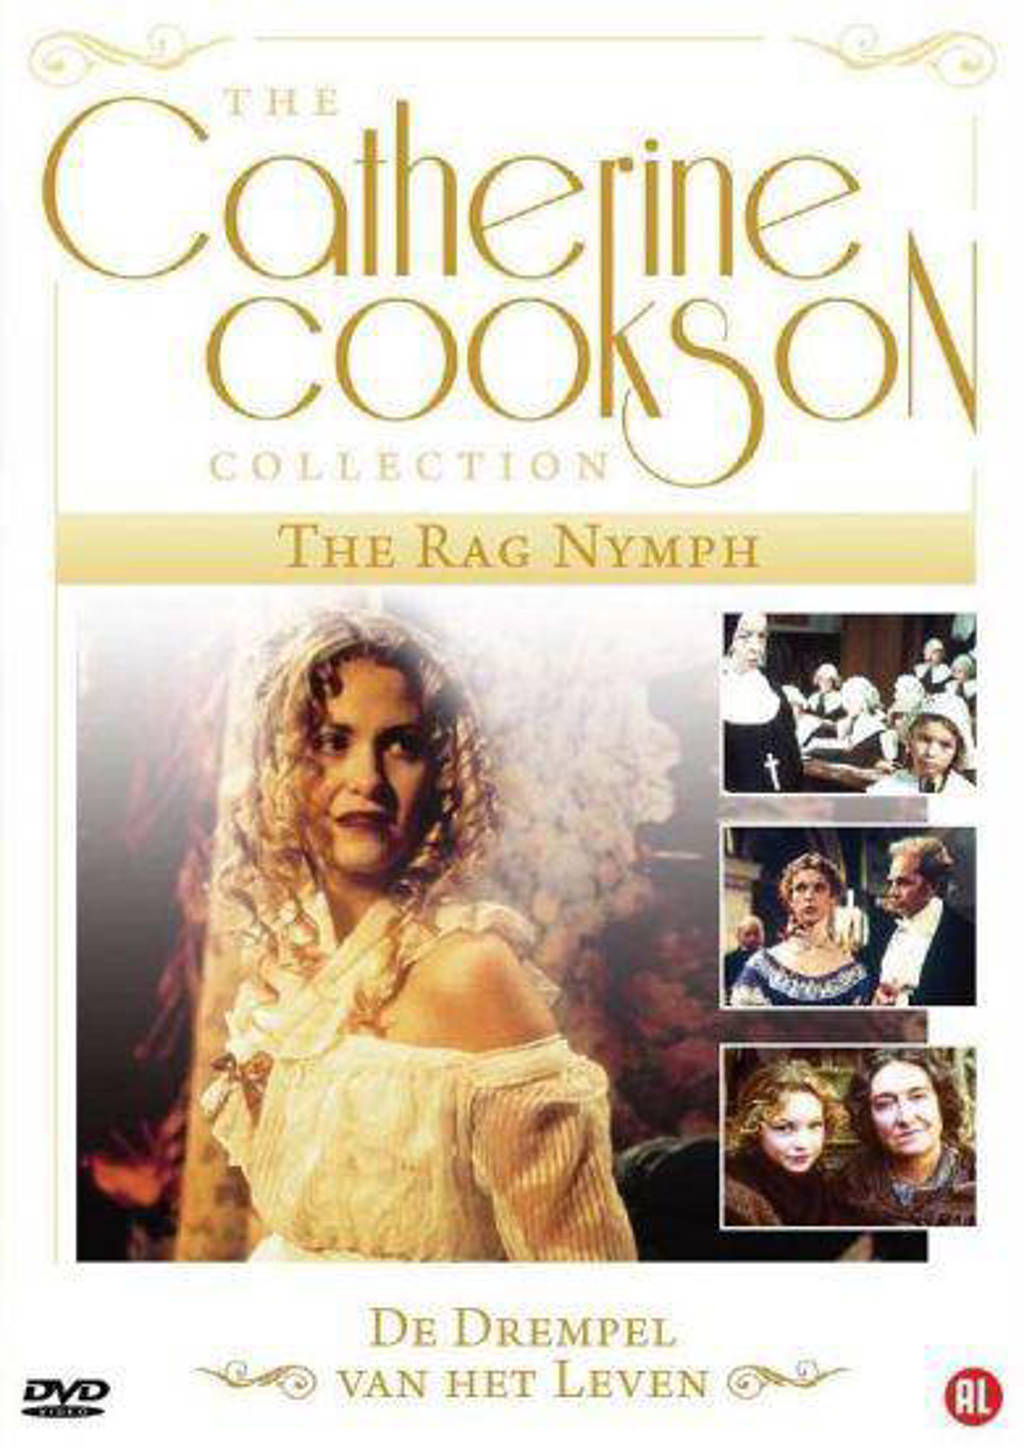 Catherine Cookson collection-rag nymph (DVD)